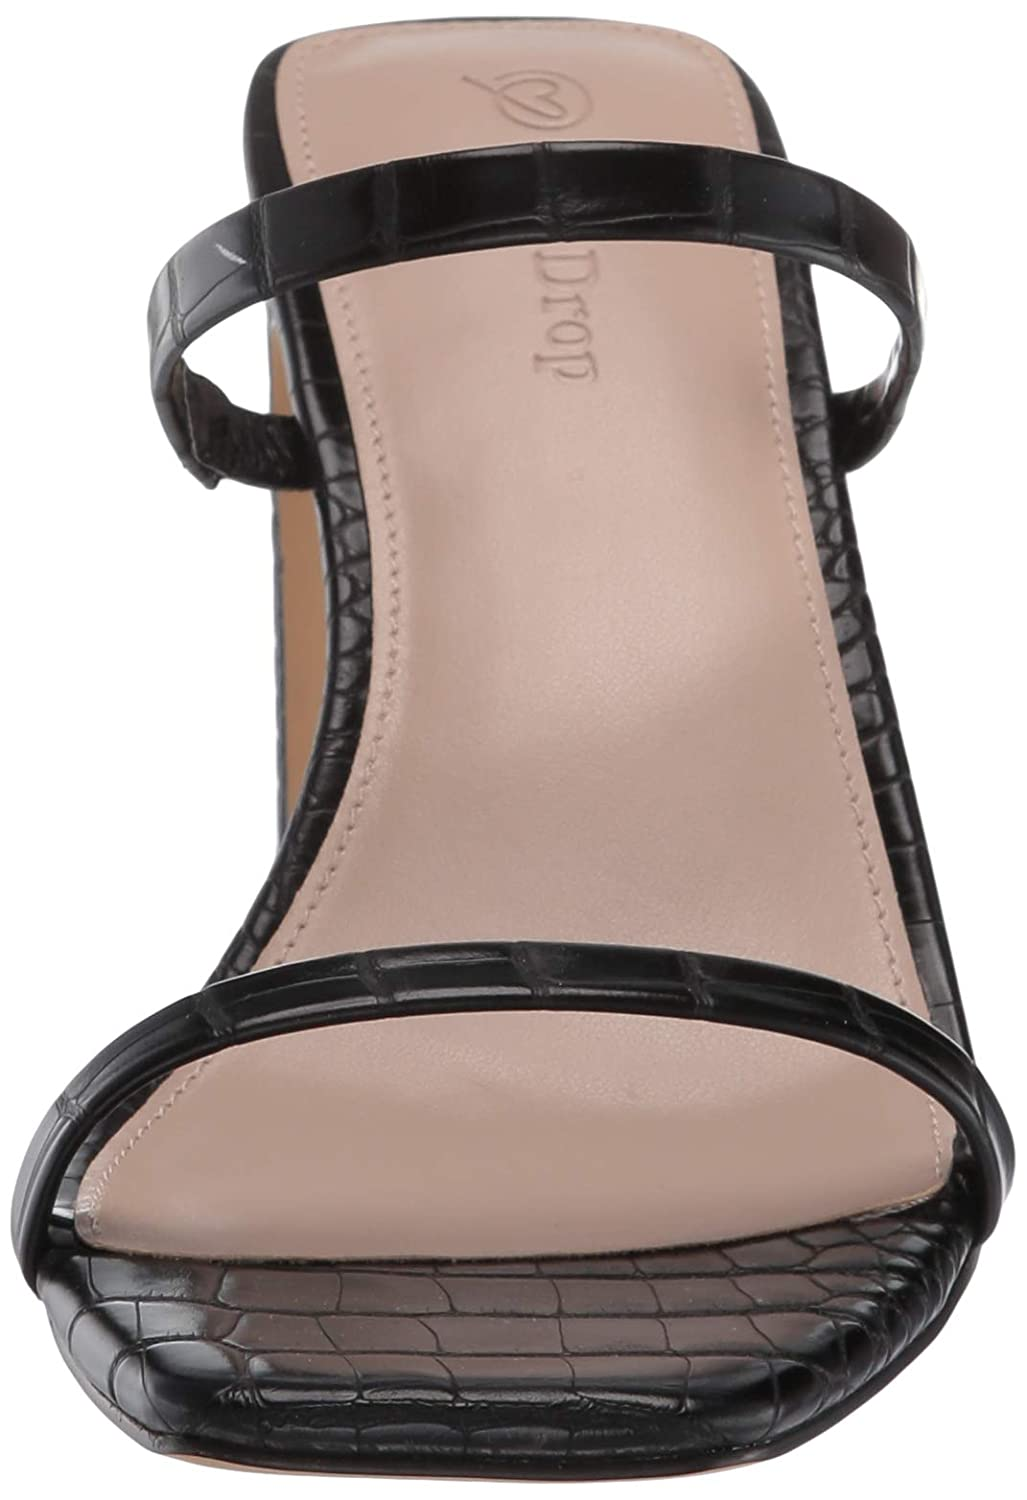 The Drop Womens Avery Square Toe Two Strap High Heeled Sandal